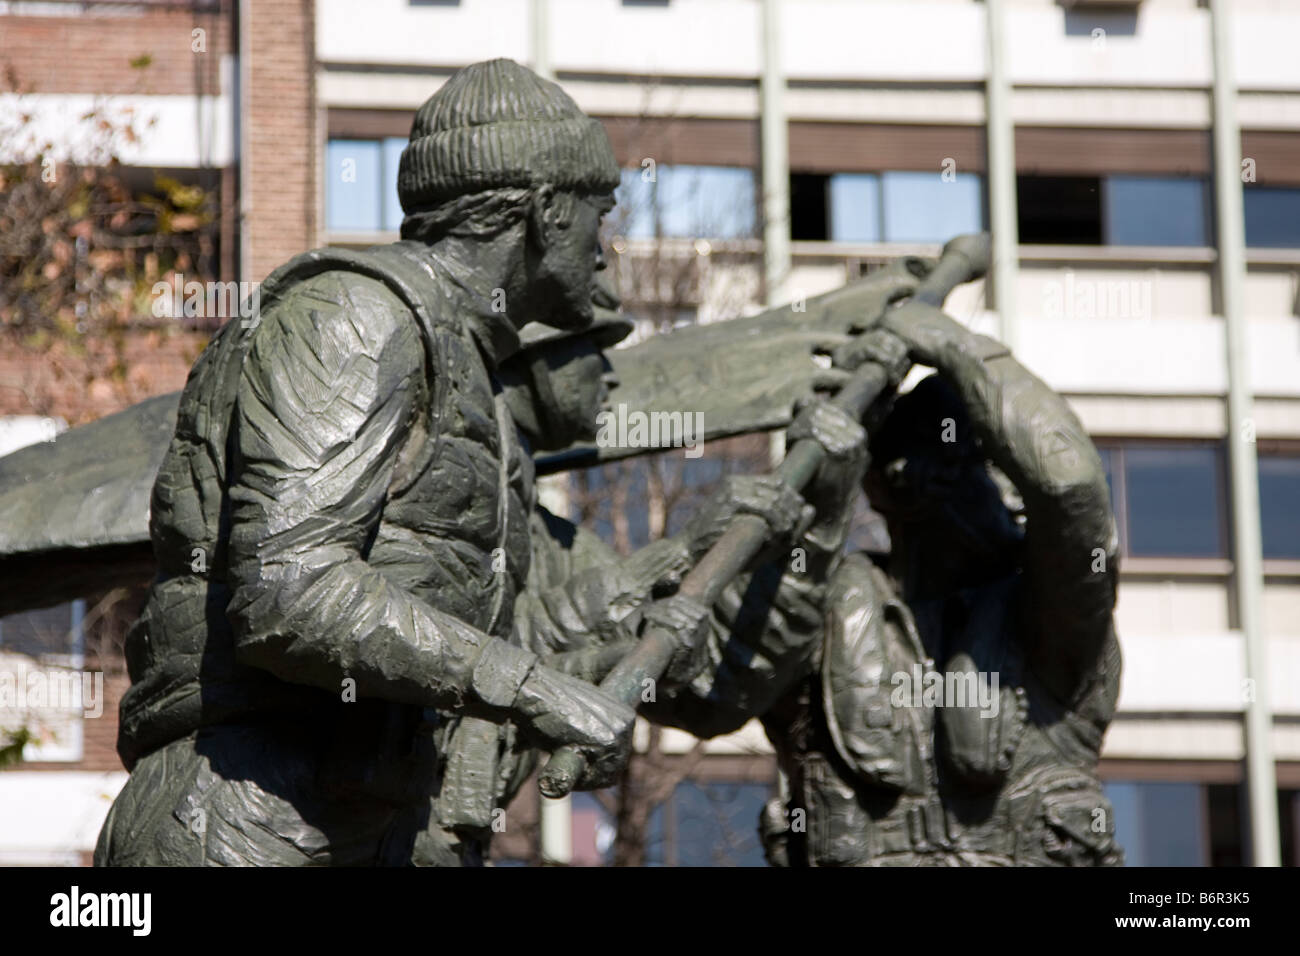 Detail from monument to Malvinas Heroes in Cordoba, Argentina - Stock Image